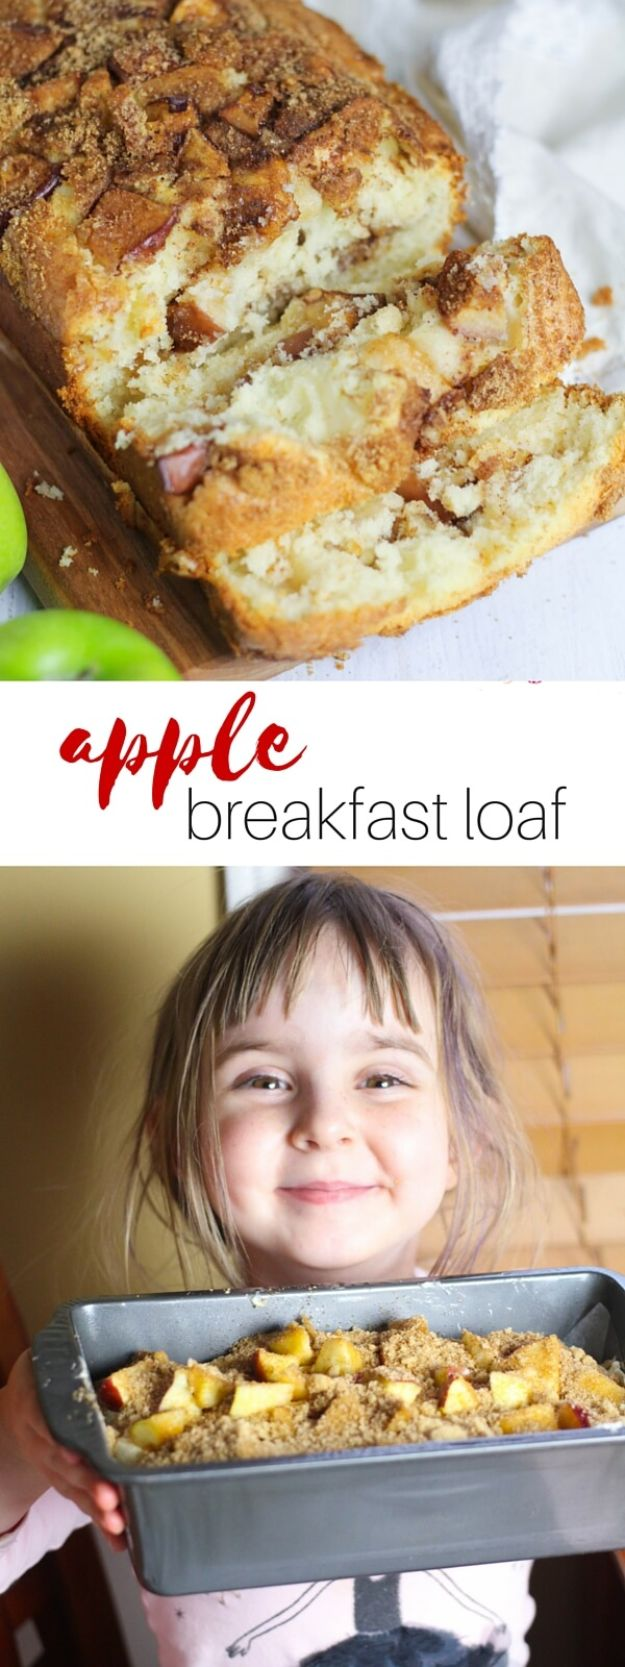 Best Recipes To Teach Your Kids To Cook - Apple Breakfast Loaf - Easy Ideas To Show Children How to Prepare Food - Kid Friendly Recipes That Boys and Girls Can Make Themselves - No Bake, 5 Minute Foods, Healthy Snacks, Salads, Dips, Roll Ups, Vegetables and Simple Desserts - Recipes To Learn How To Make Fun Food http://diyjoy.com/best-recipes-teach-kids-to-cook